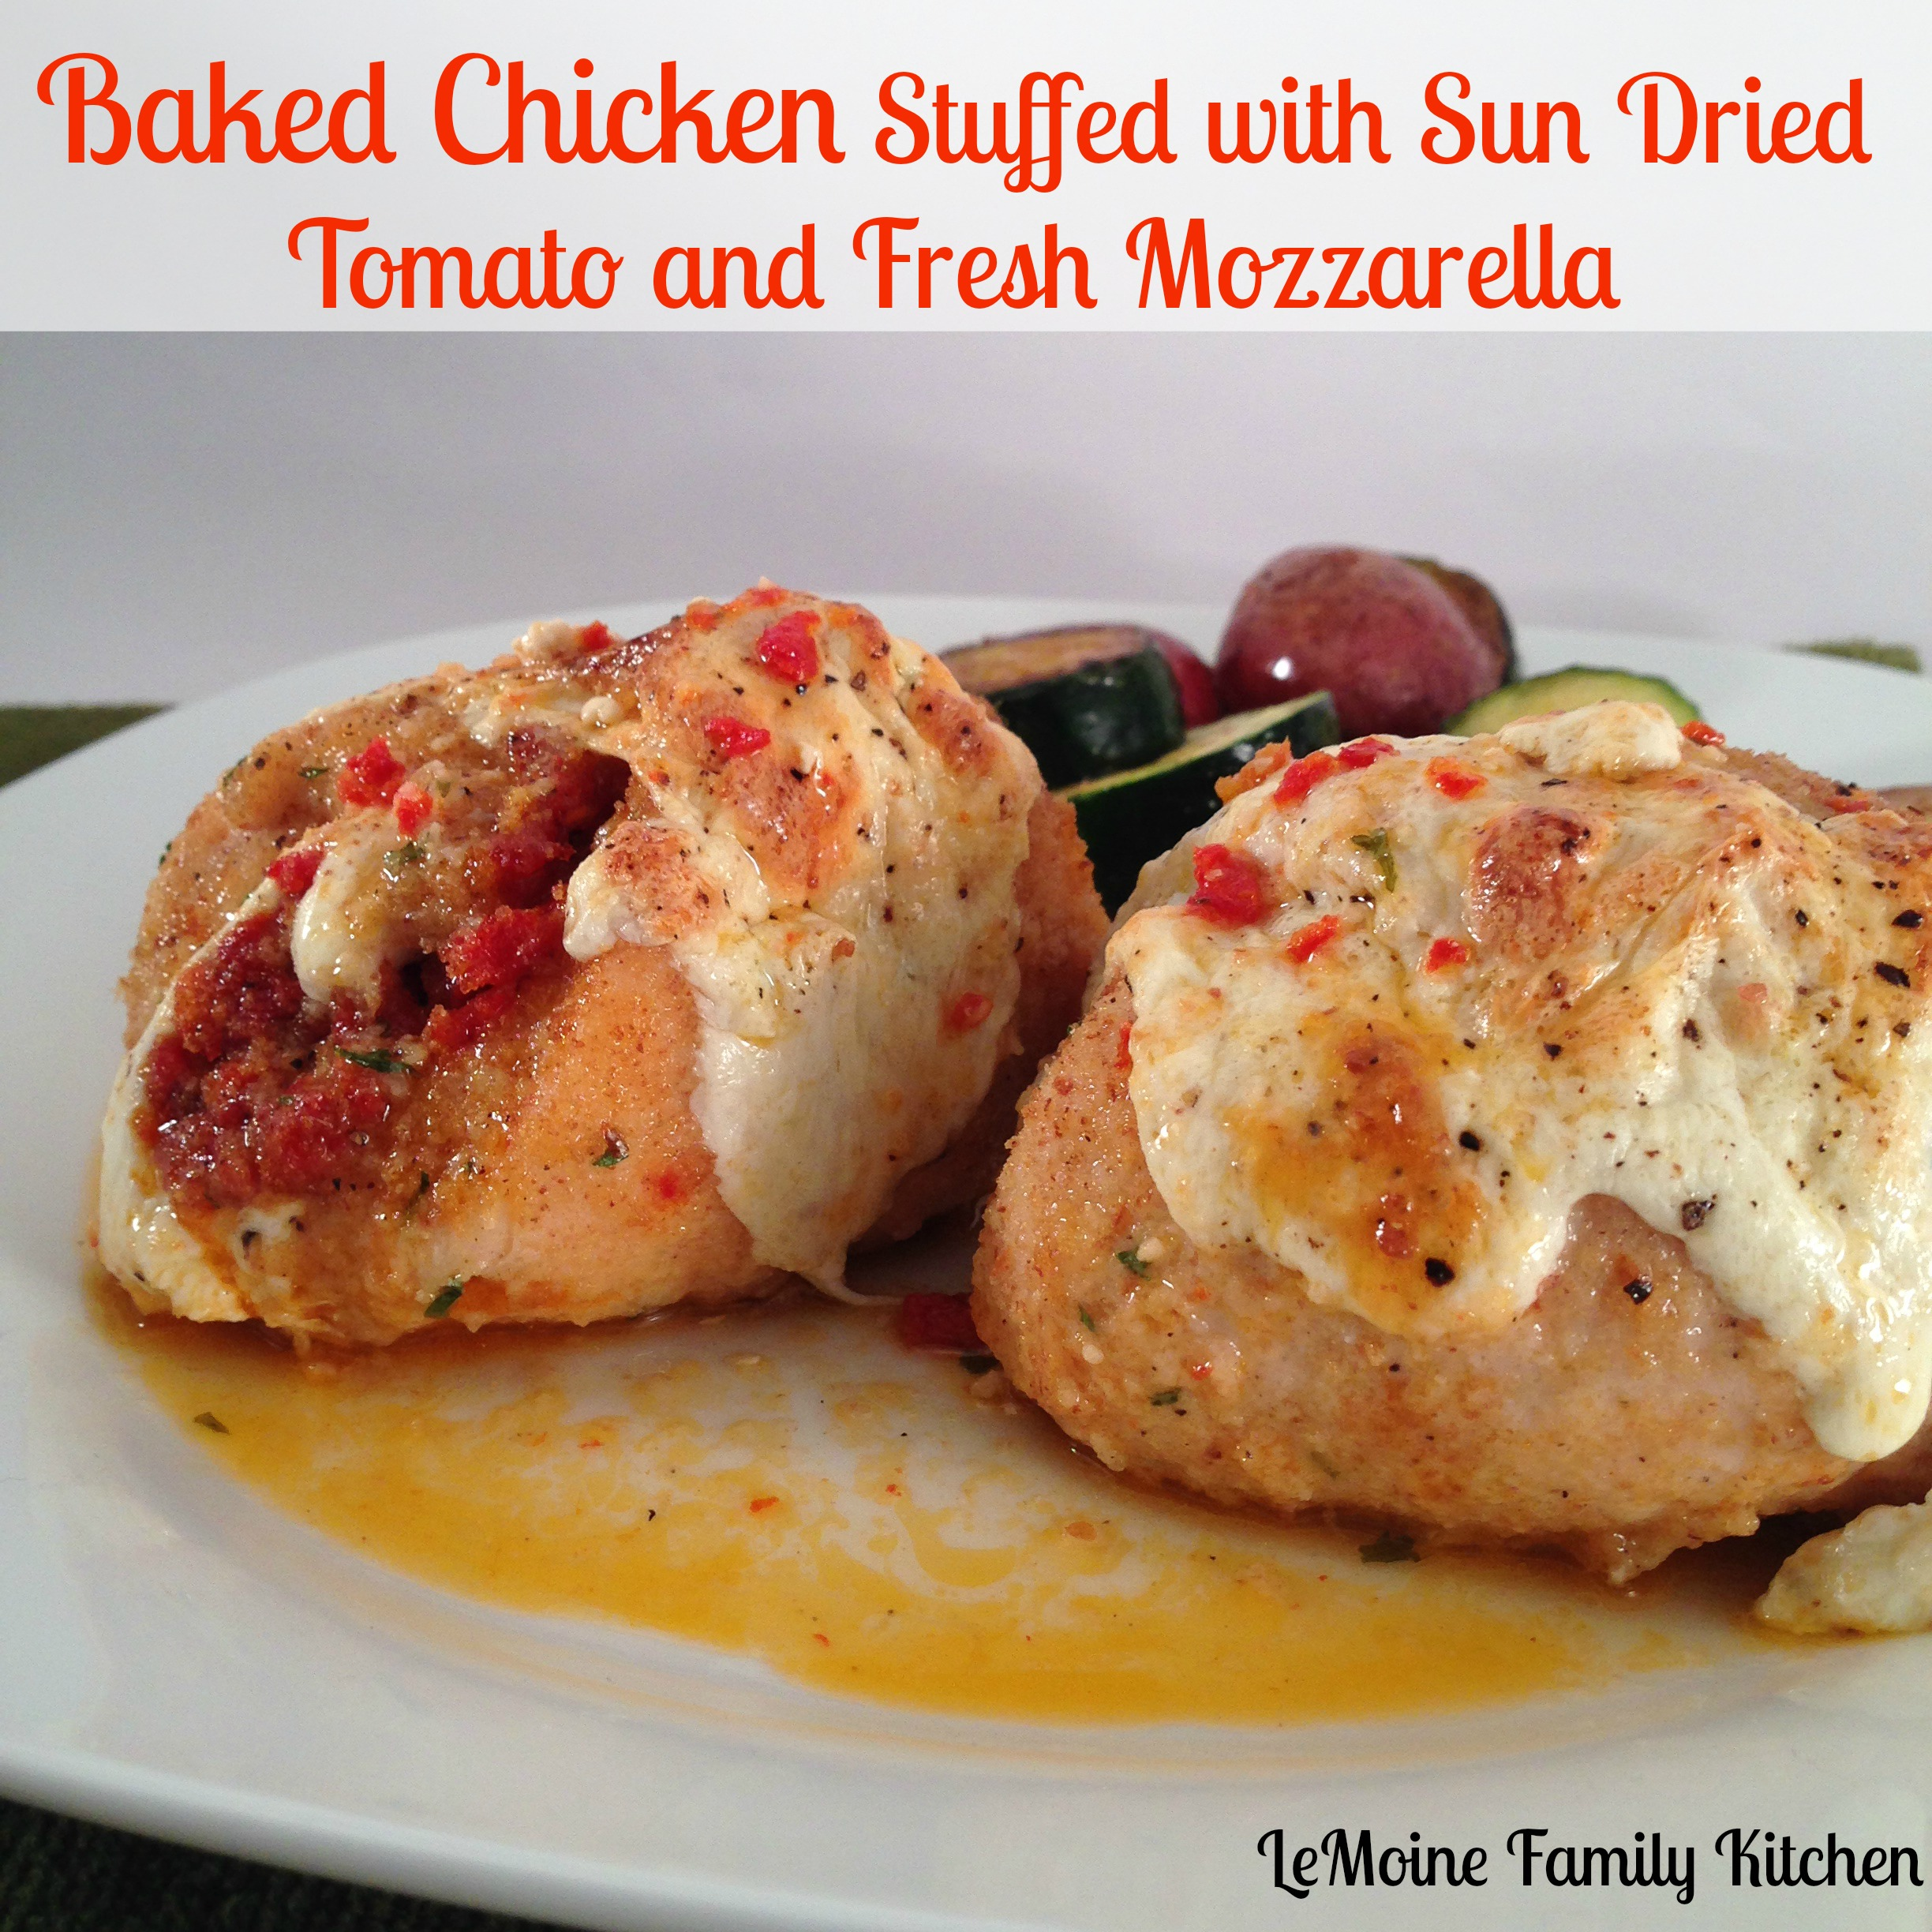 Baked Chicken Stuffed with Sun Dried Tomato & Fresh Mozzarella